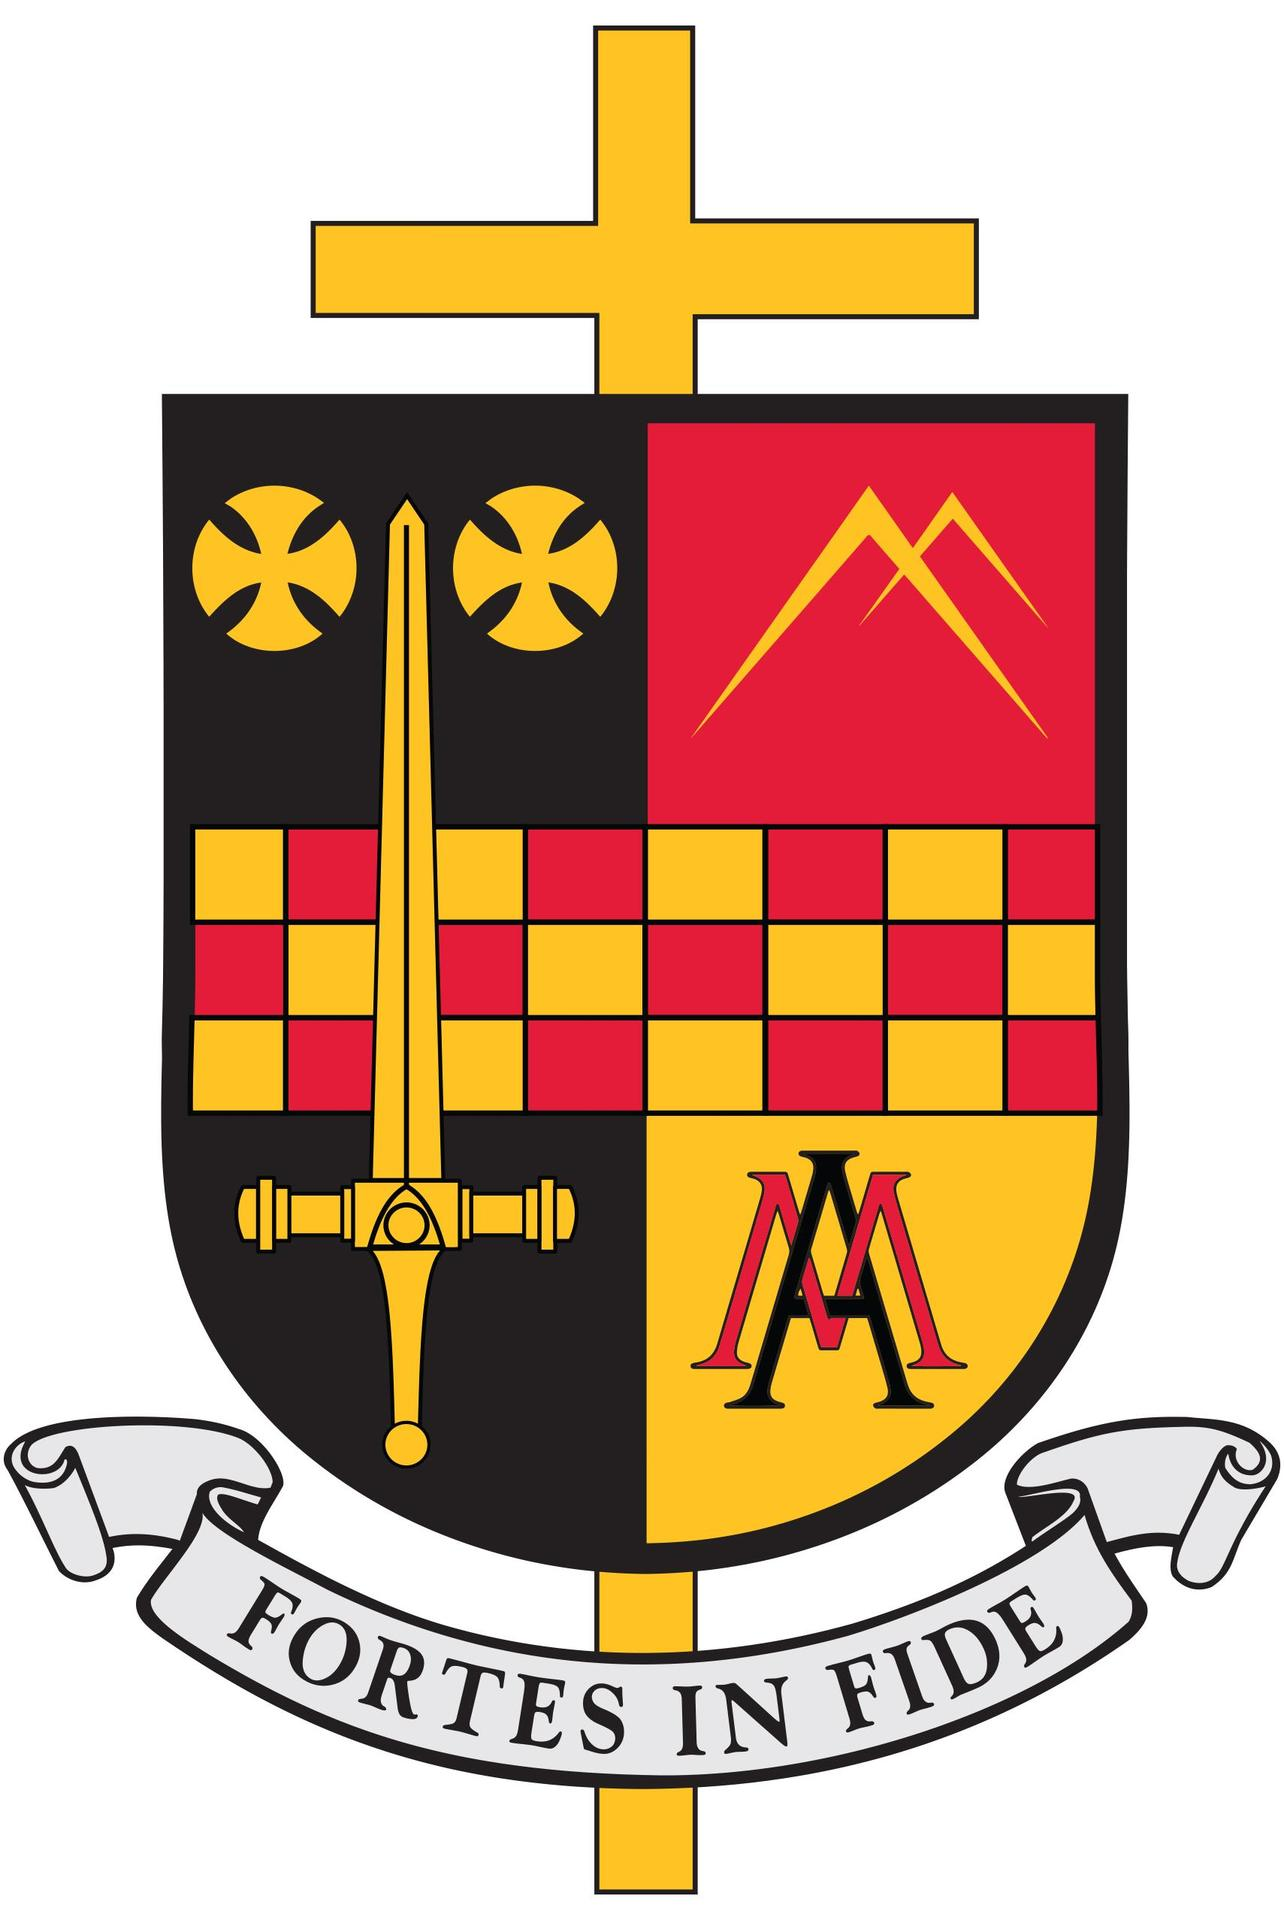 North Catholic High School Crest